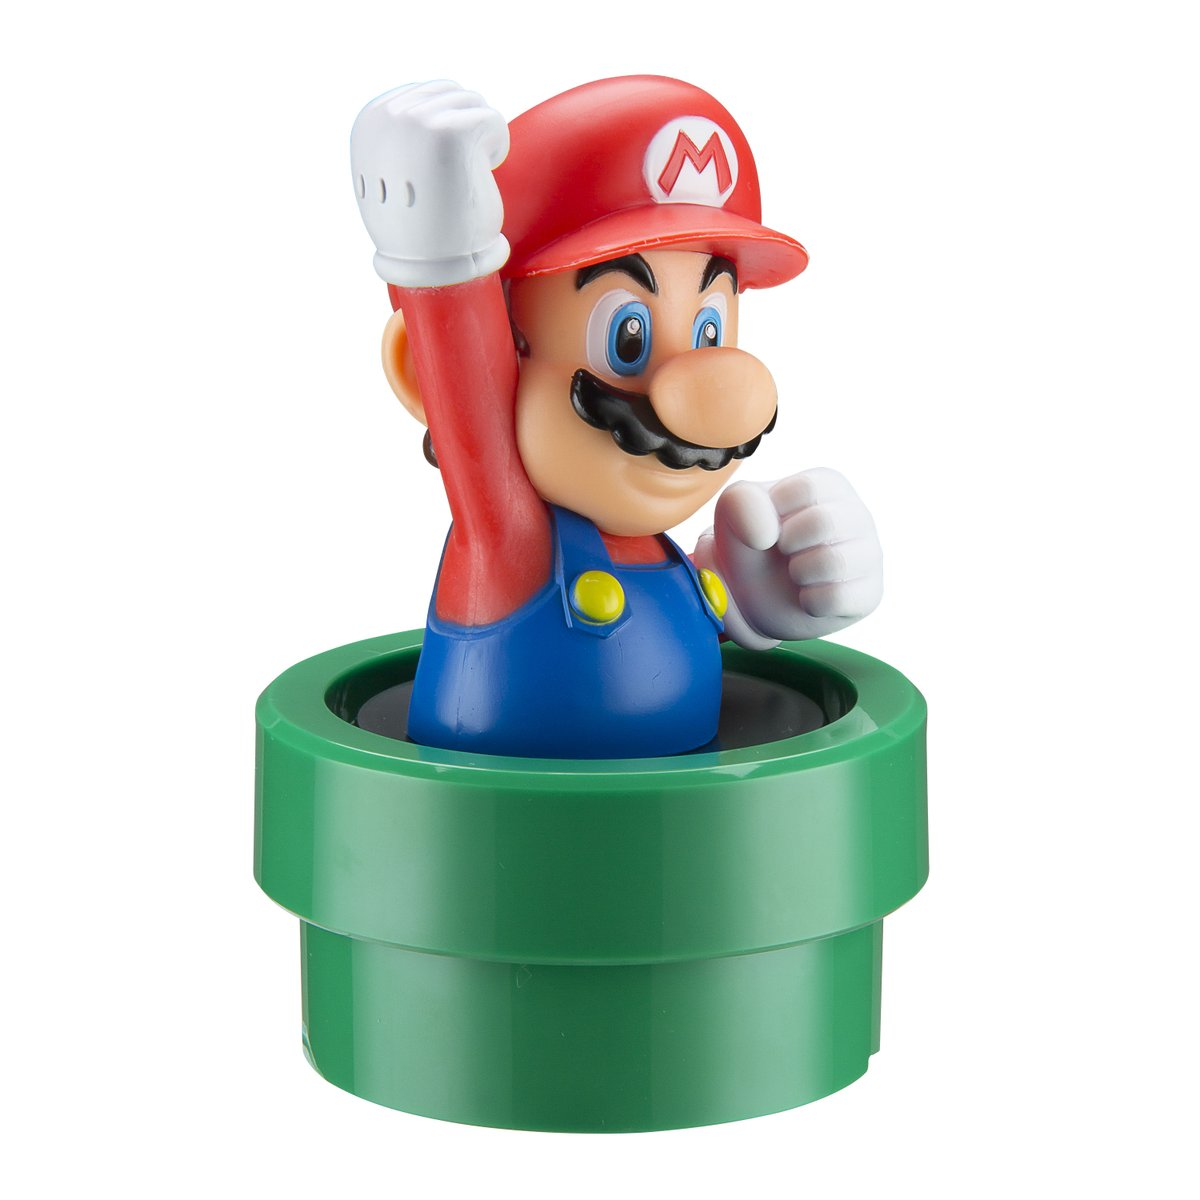 The Nintendo Mario Bluetooth Speaker is available for $19.82 at Walmart. 2